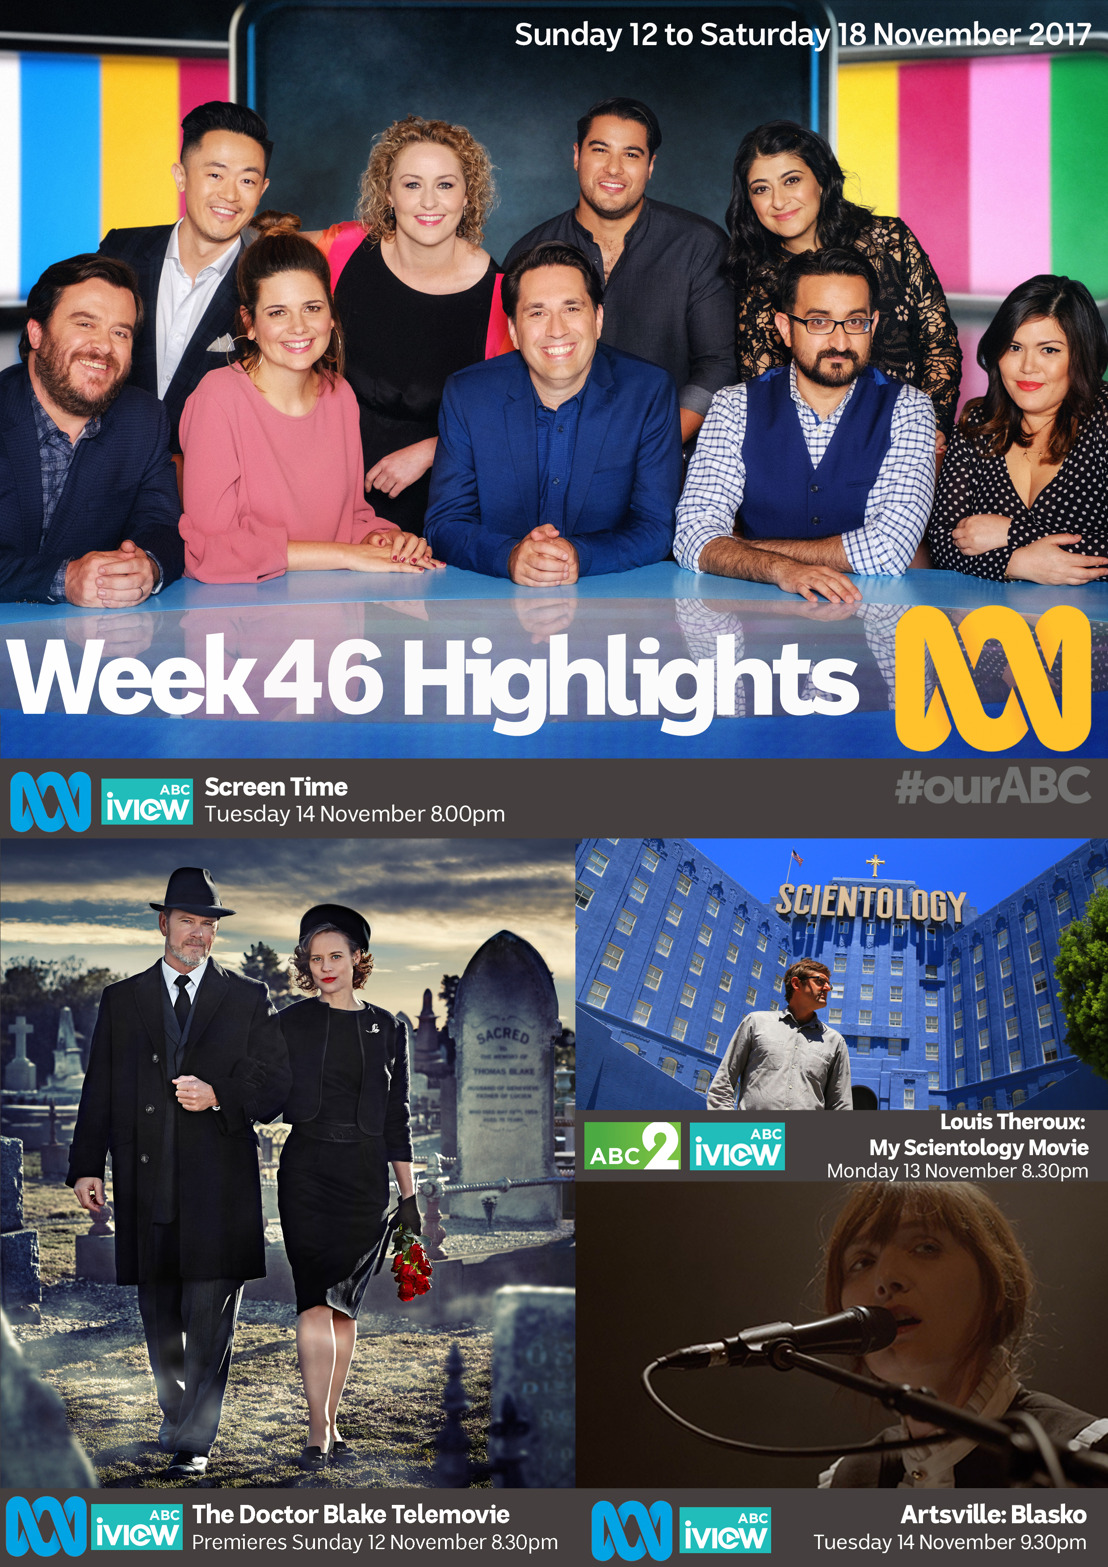 ABC Program Highlights - Week 46